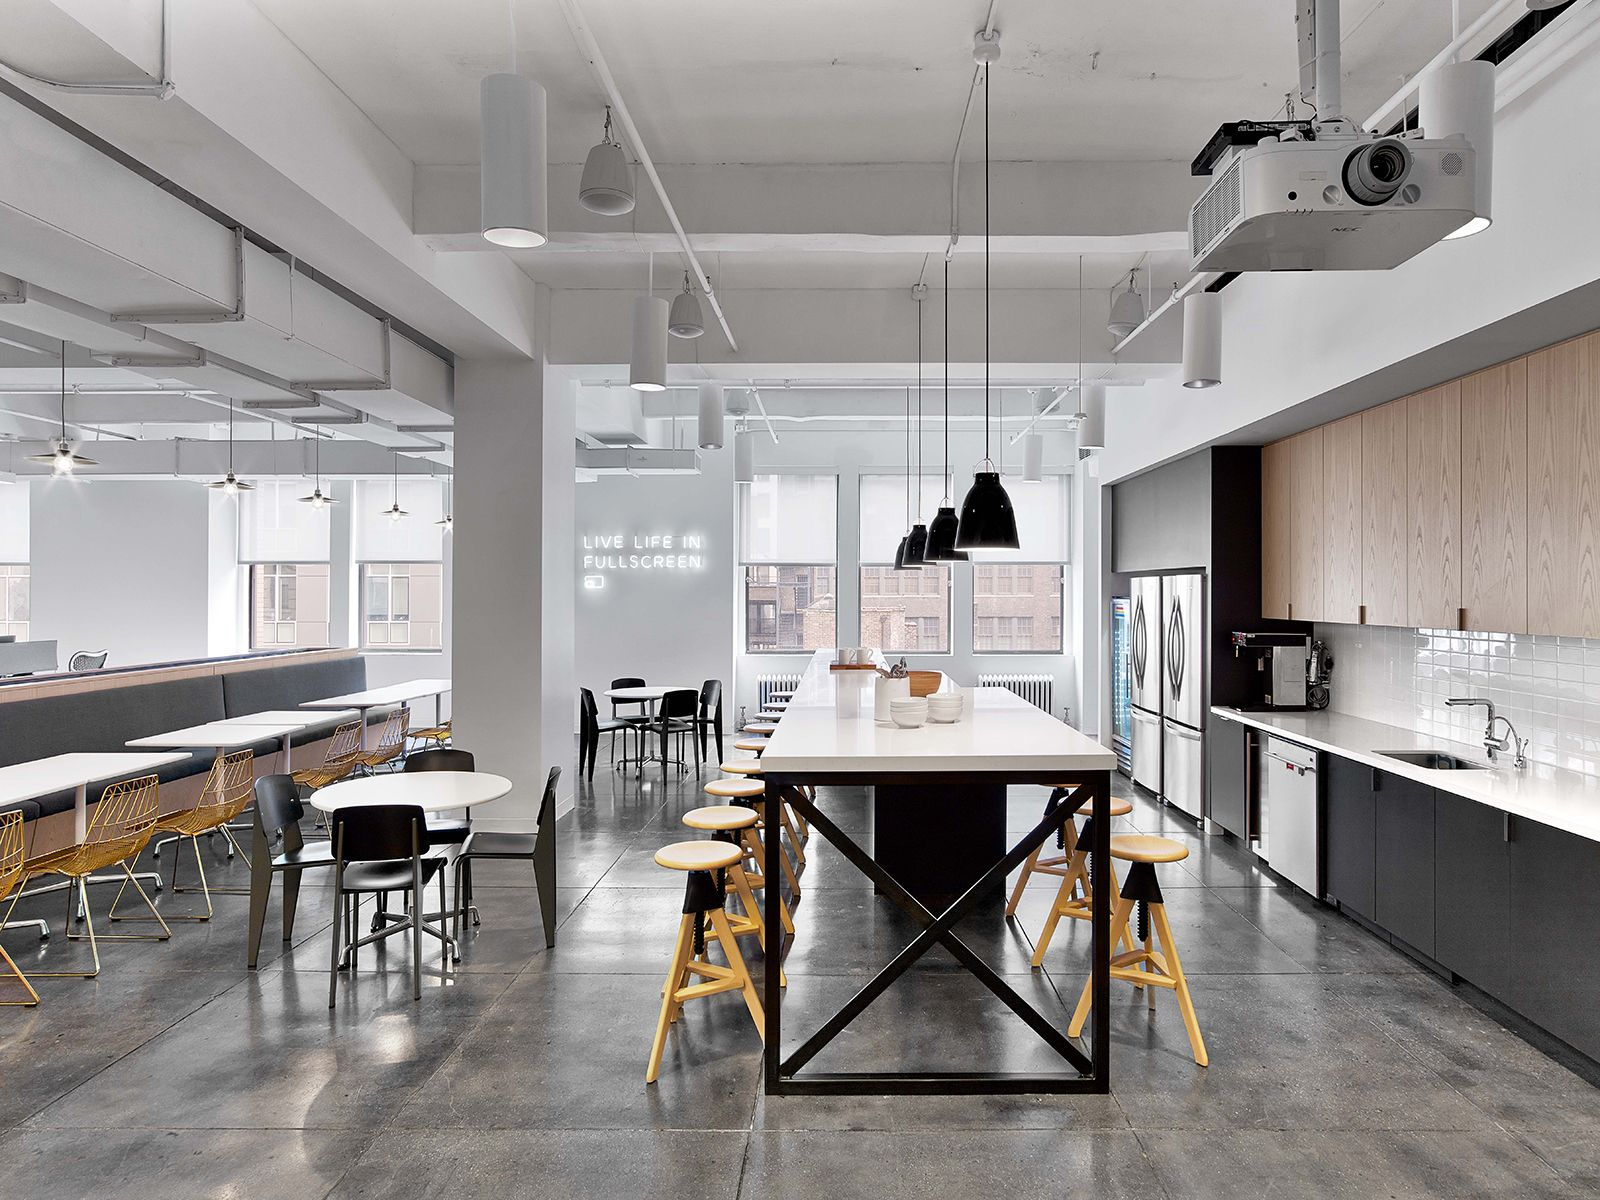 That Ems Por You Channels And Networks Recently Moved Into A New Office In York City Designed By Interior Design Firm Rapt Studio